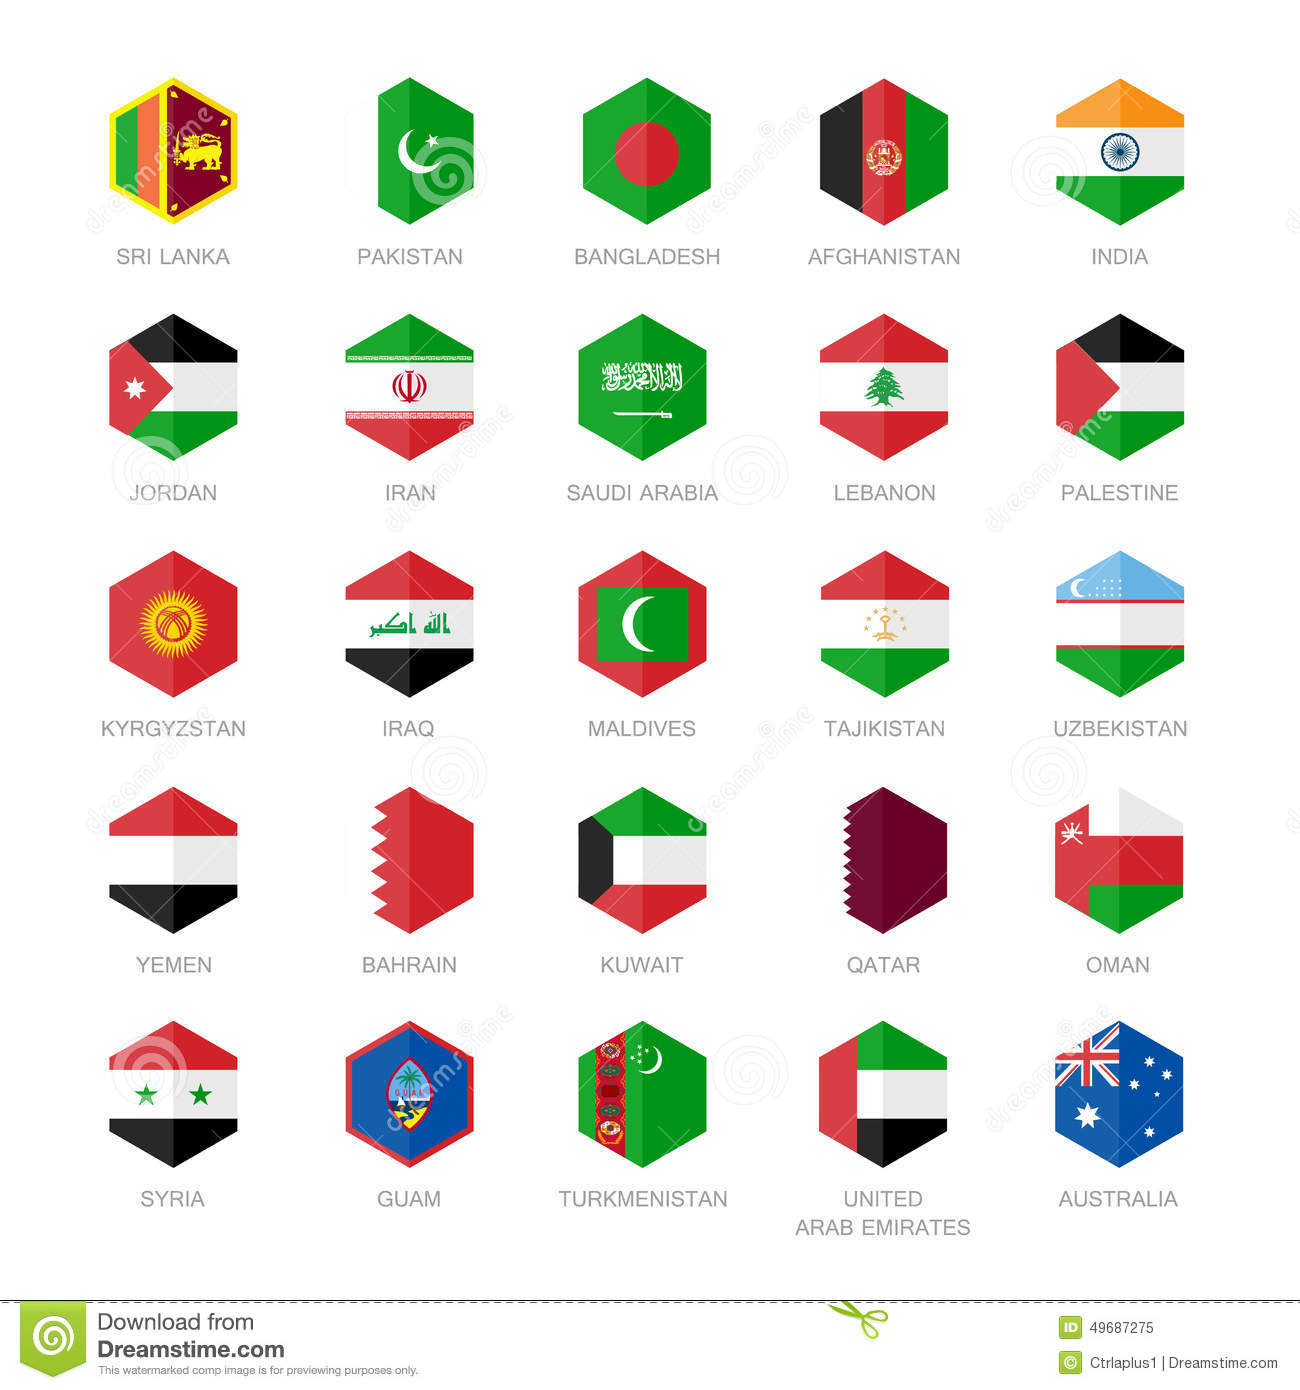 3d Bangladesh Flag Wallpaper Asia Middle East And South Asia Flag Icons Hexagon Flat